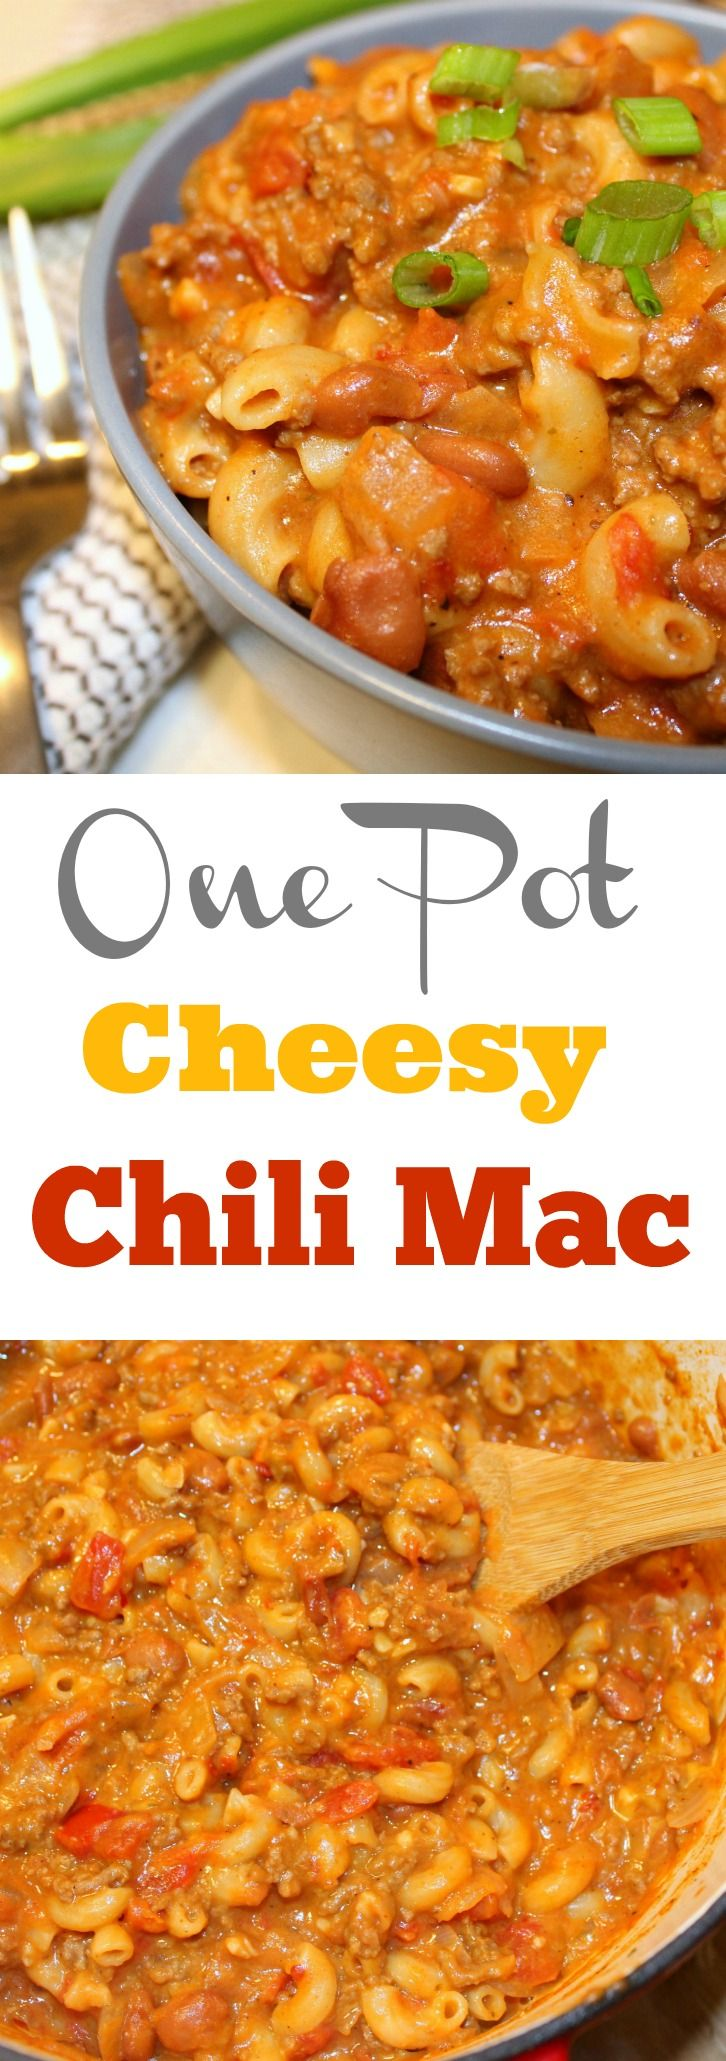 If your looking for an easy one pot meal, than you really need to try this One Pot Cheesy Chili Mac. It combines two of my favorite things, chili and mac and cheese. Perfect for a weeknight dinner for the family.